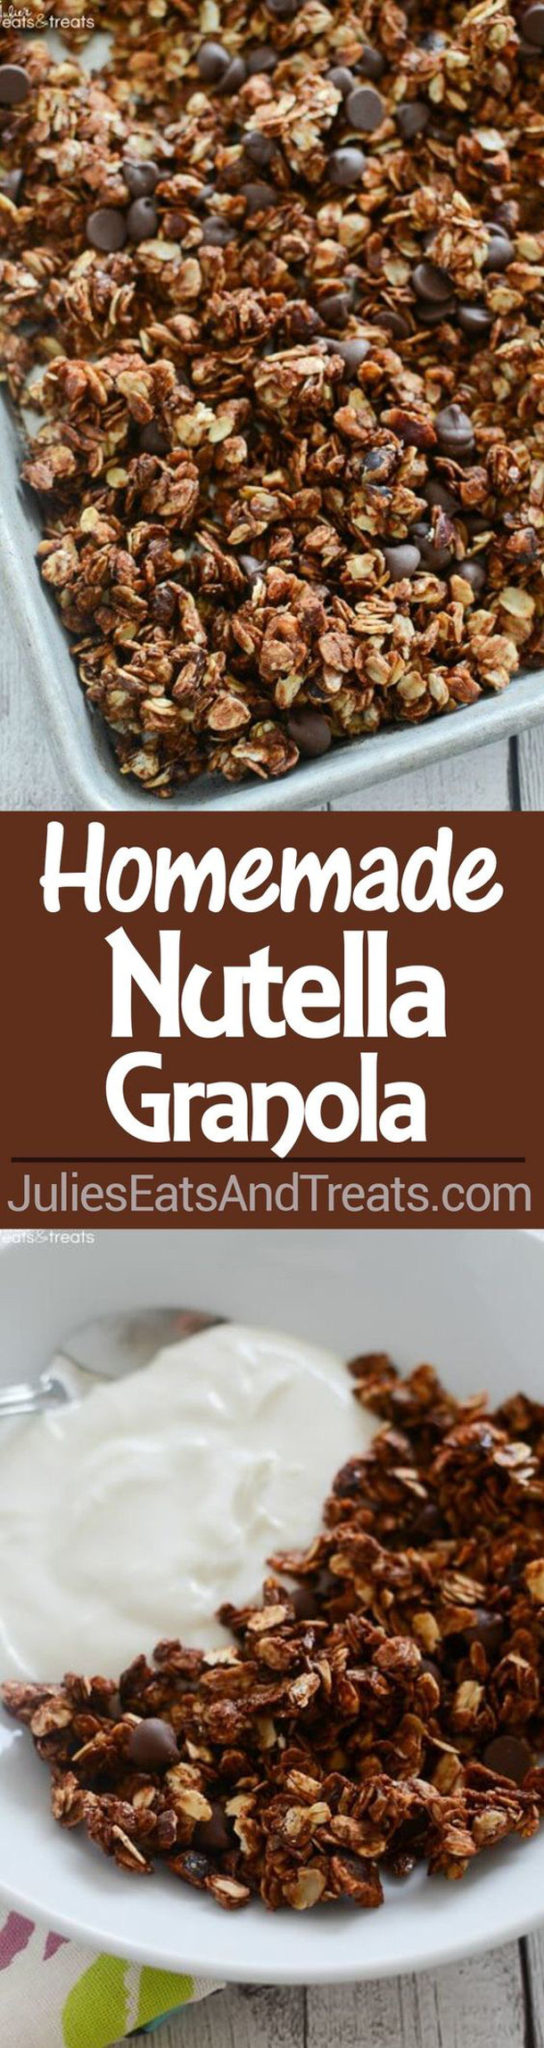 Healthy Snacks - Homemade Nutella Granola Recipe via Julies Eats and Treats #healthysnacks #healthytreats #healthyafterschooltreats #healthyrecipes #healthyfood #healthy #healthydesserts